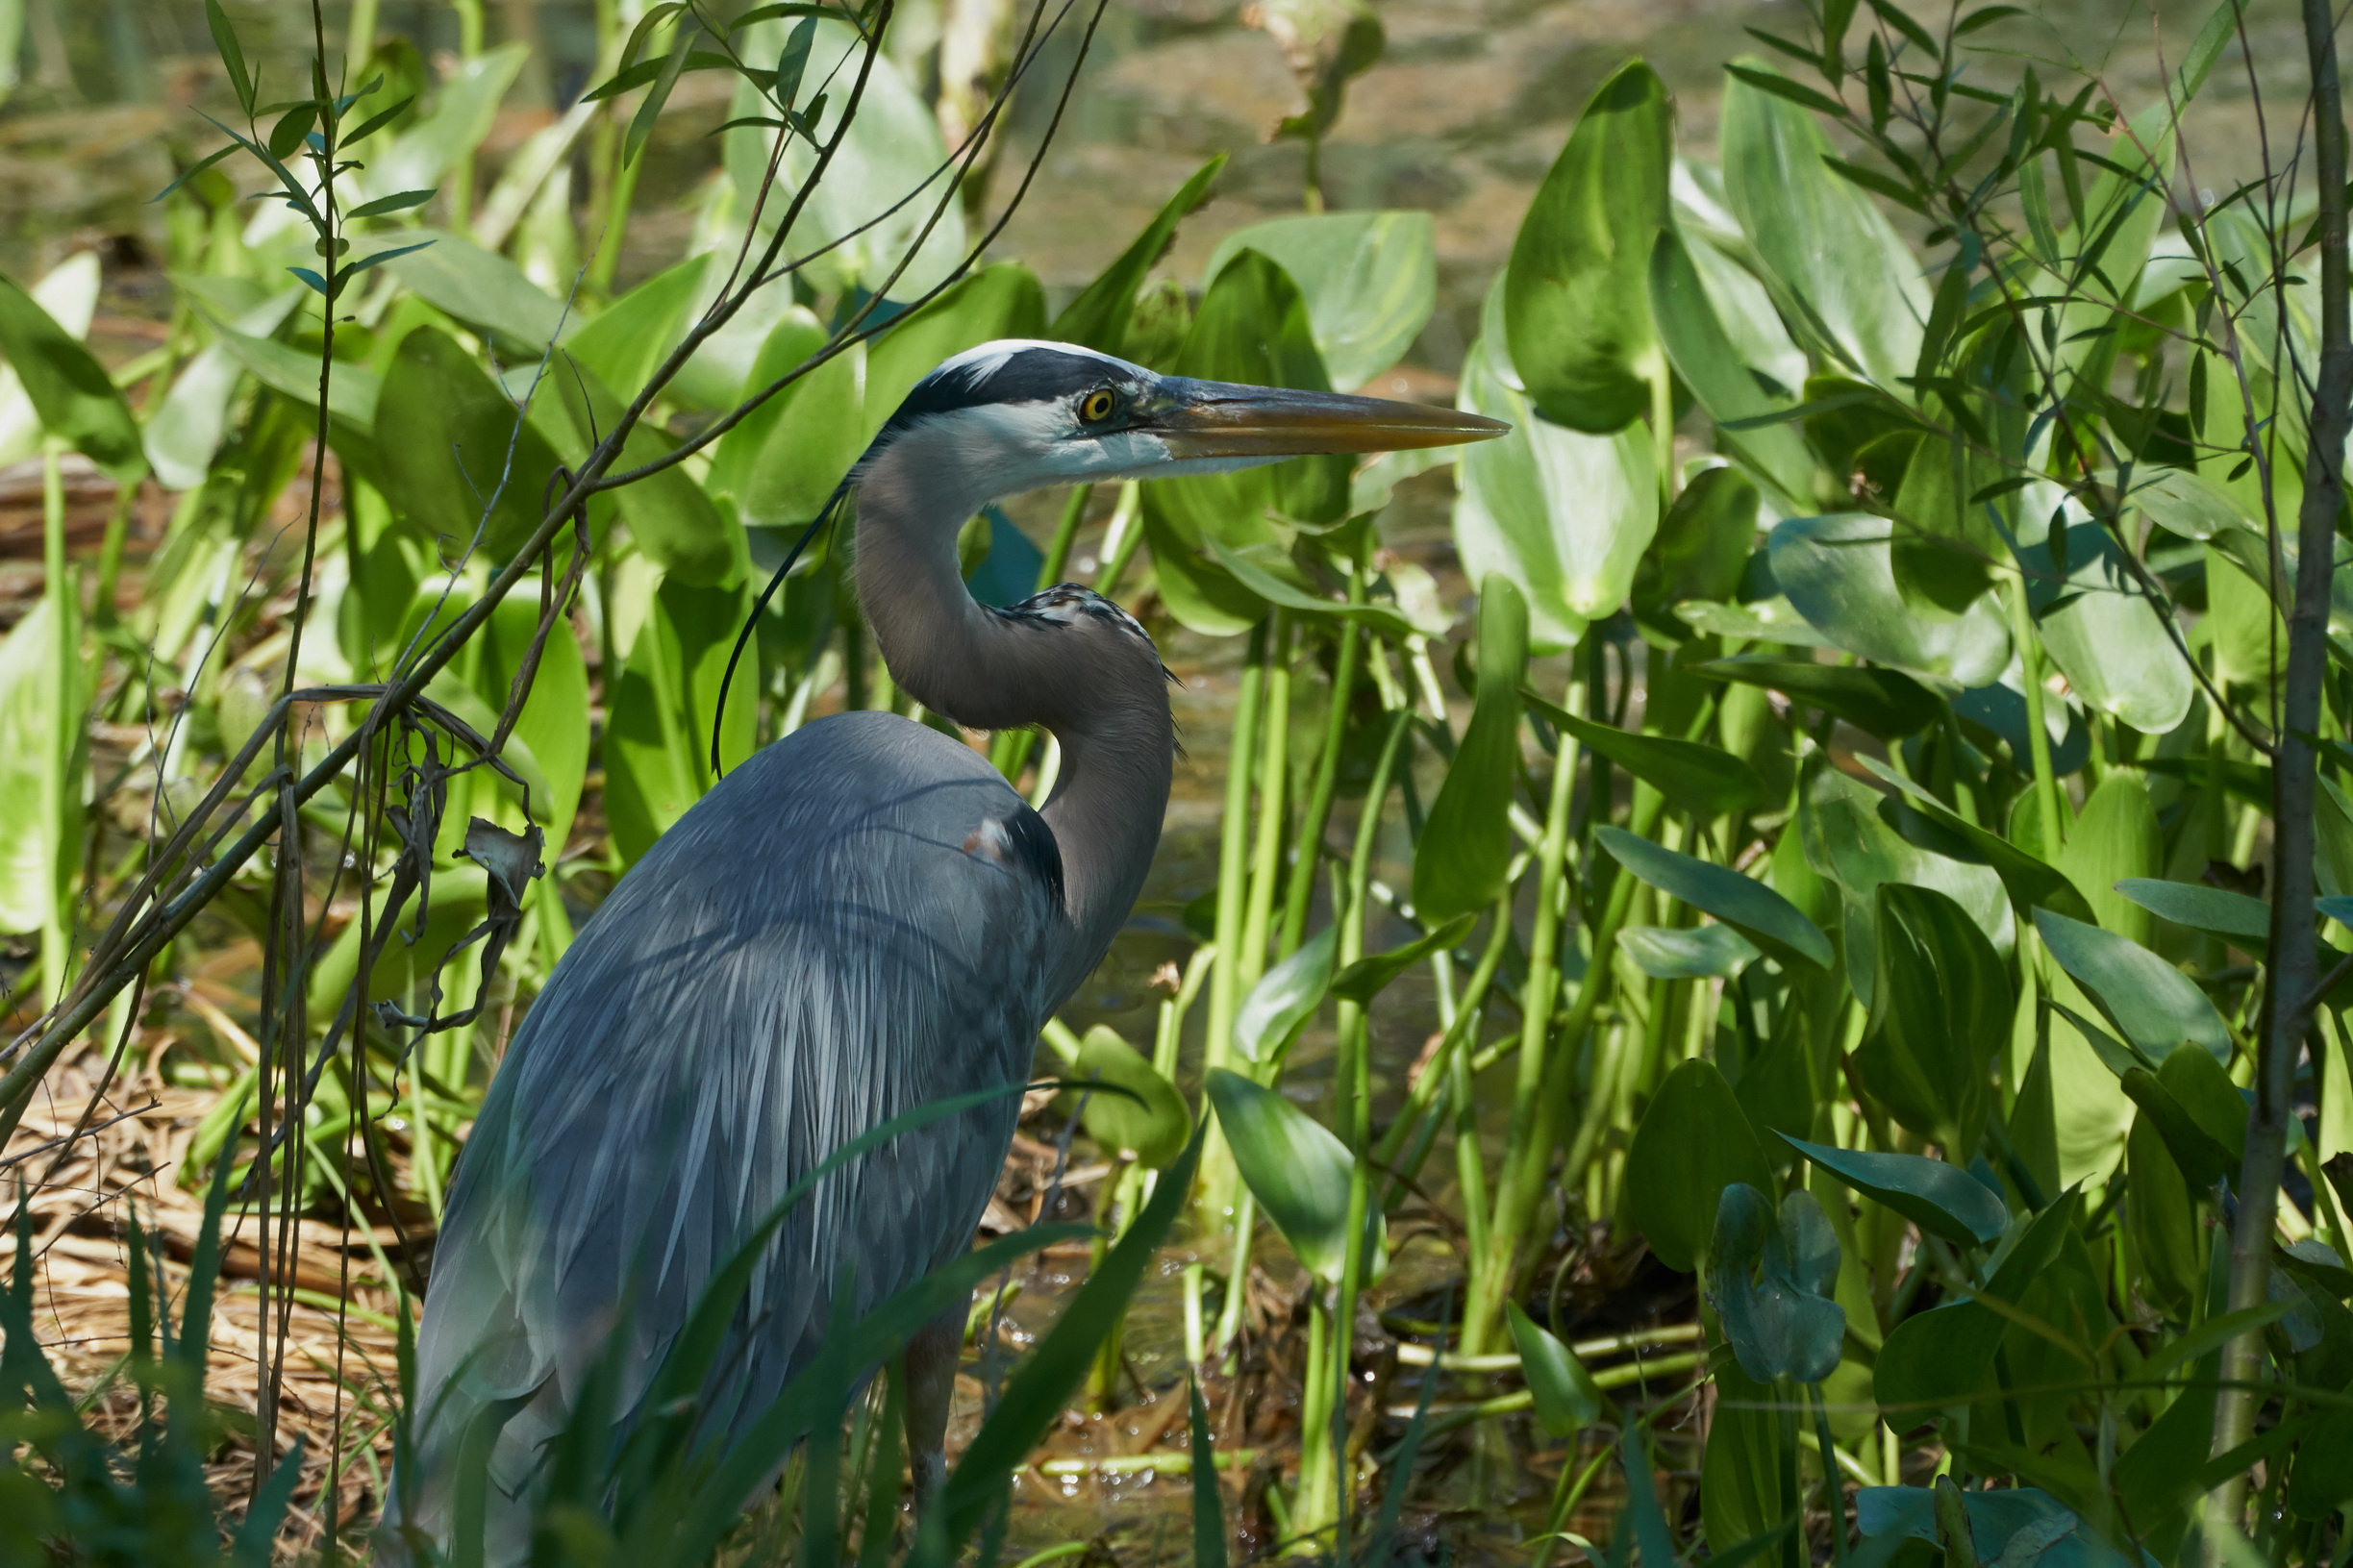 Great blue heron 33 May 09 2018_resize.jpg